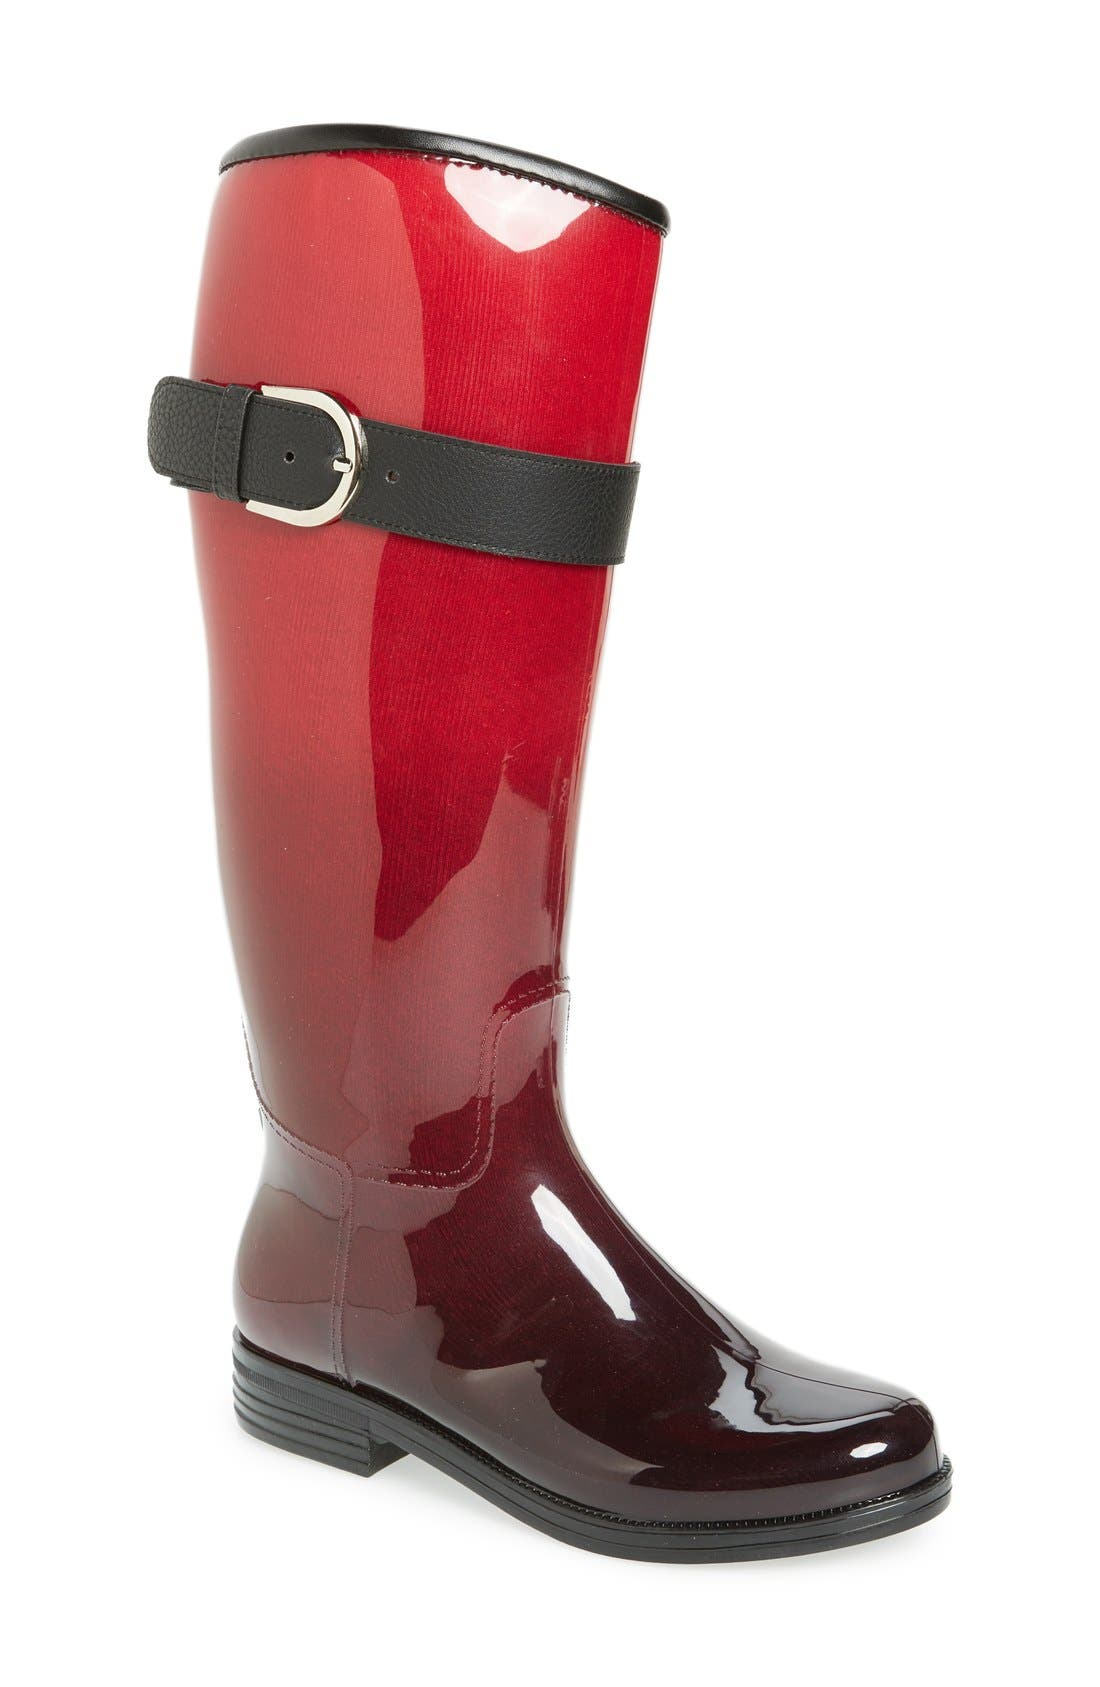 DÄV Bristol Weatherproof Knee High Rain Boot